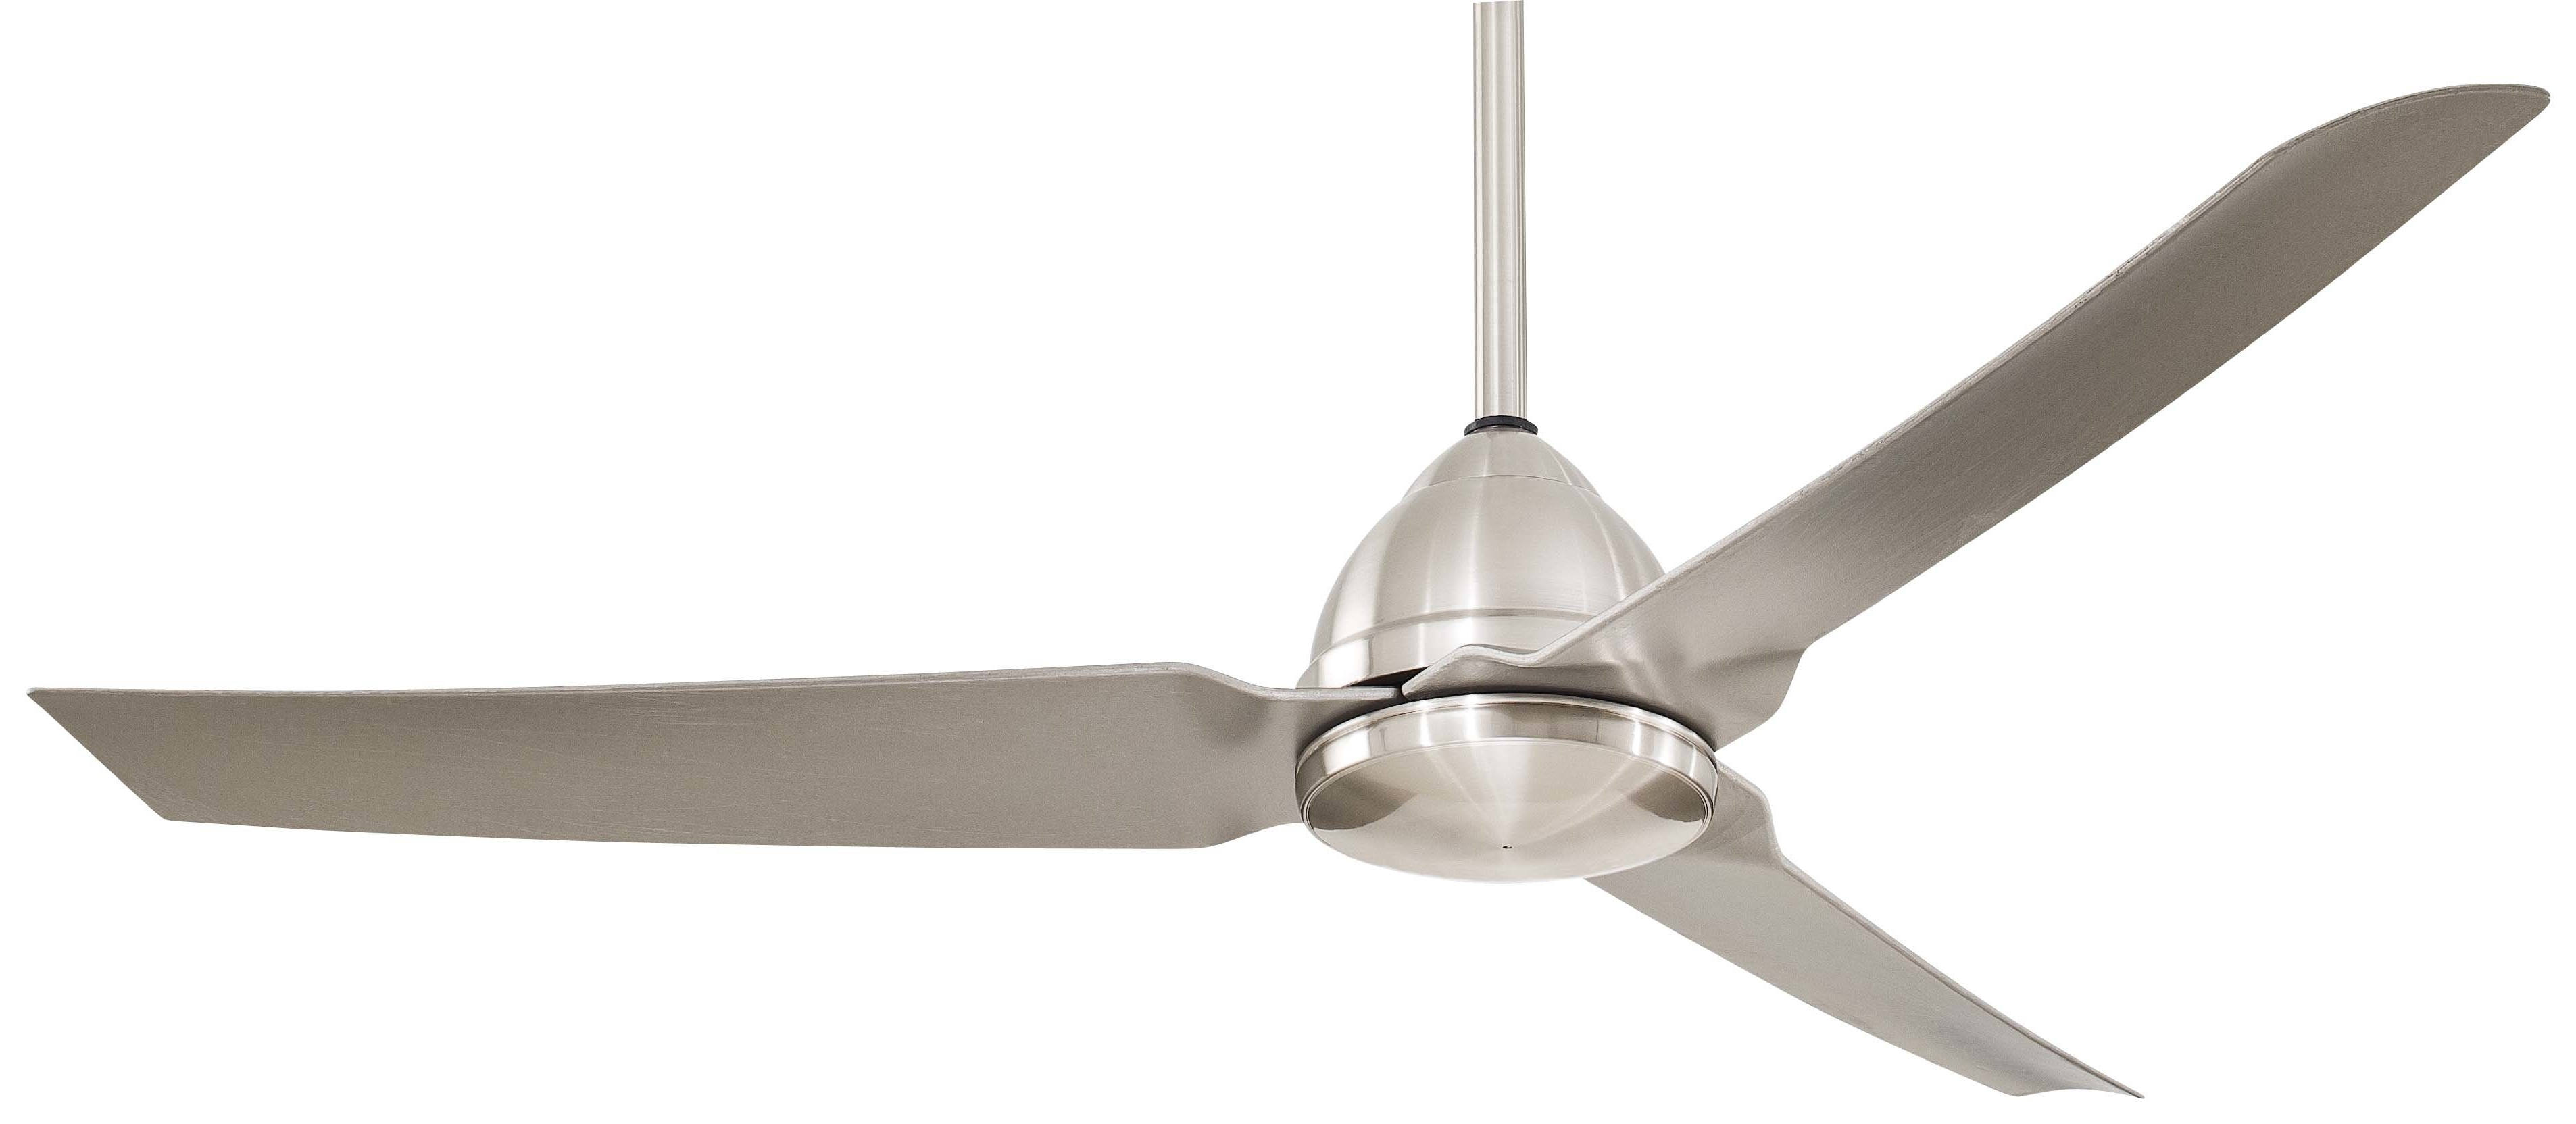 Heavy Duty Outdoor Ceiling Fans For Most Recently Released Outdoor Ceiling Fans You'll Love (View 11 of 20)